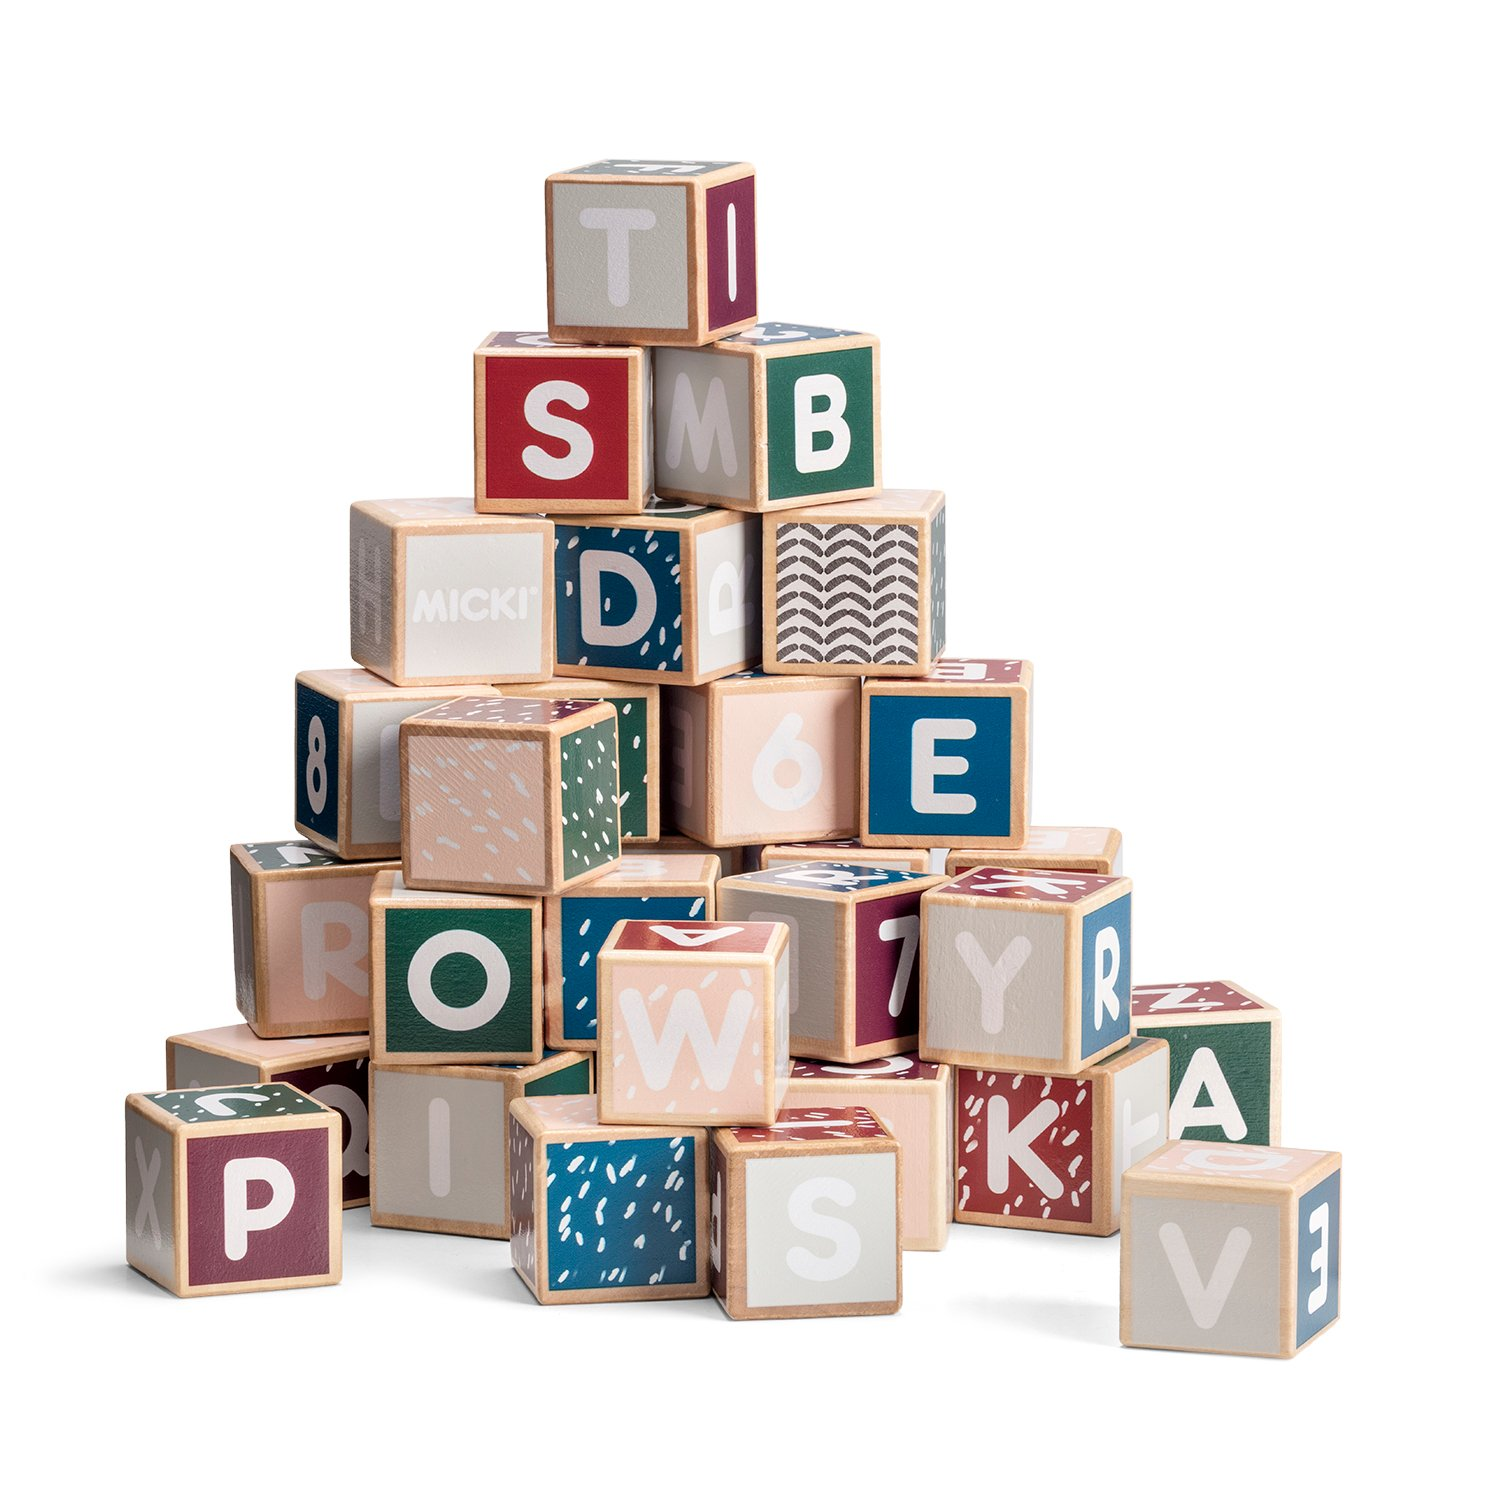 Micki - Wooden Alphabet Blocks, Senses (10213500)